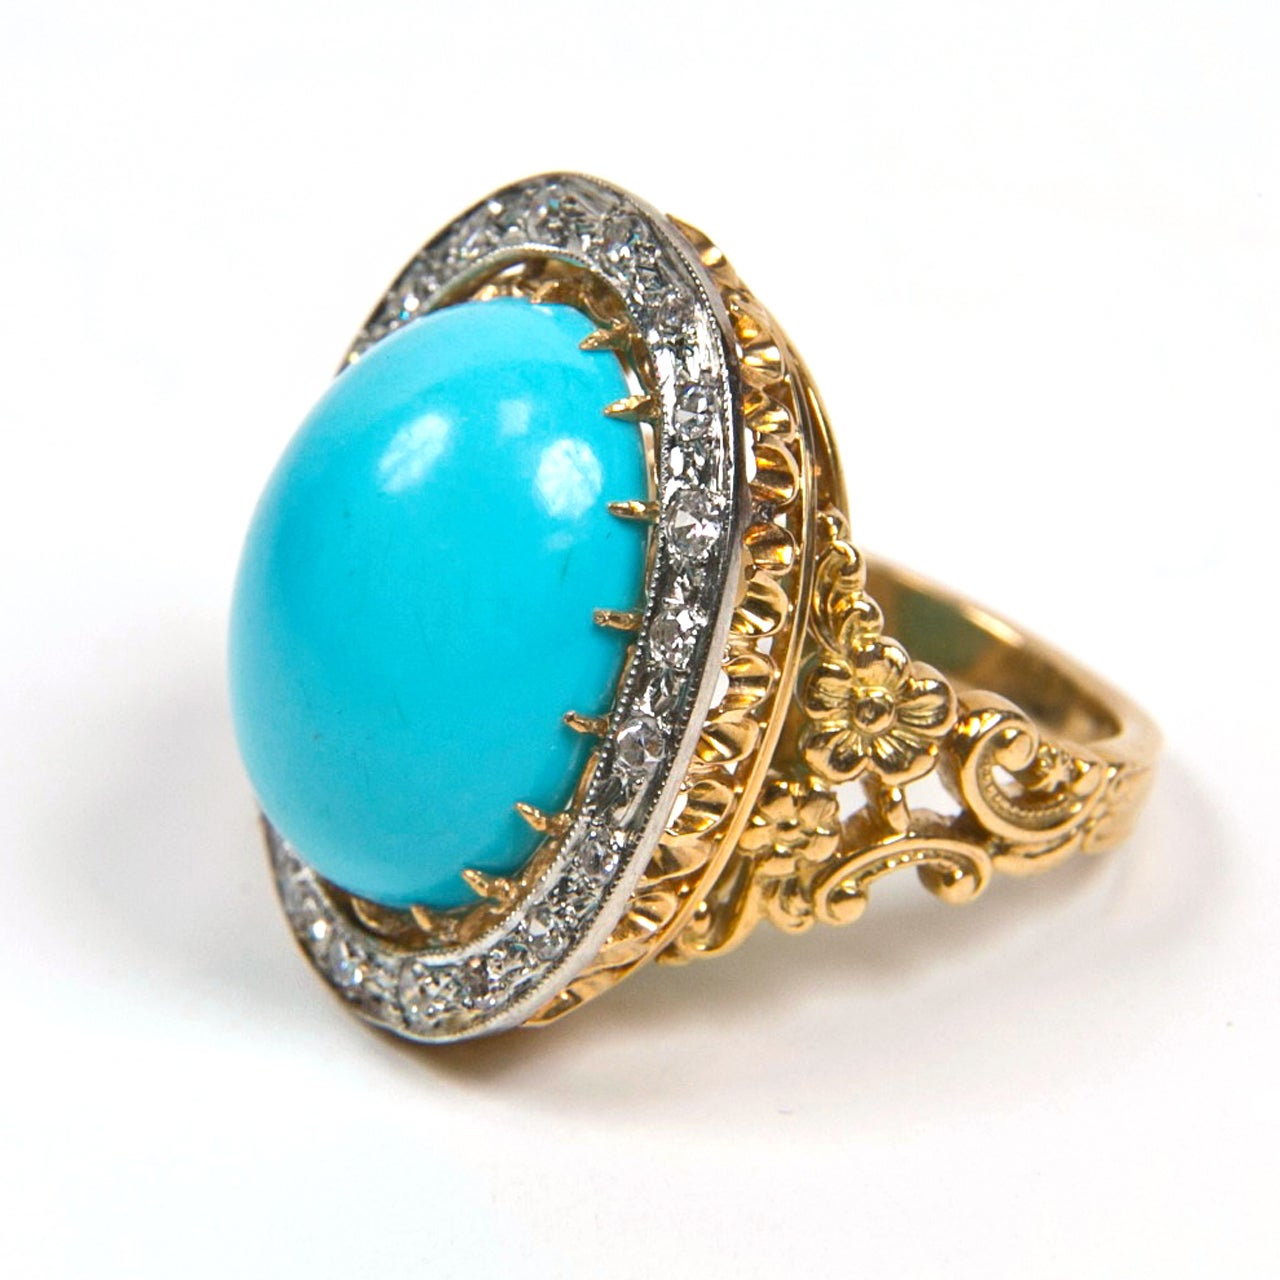 Large Turquoise Cocktail Ring